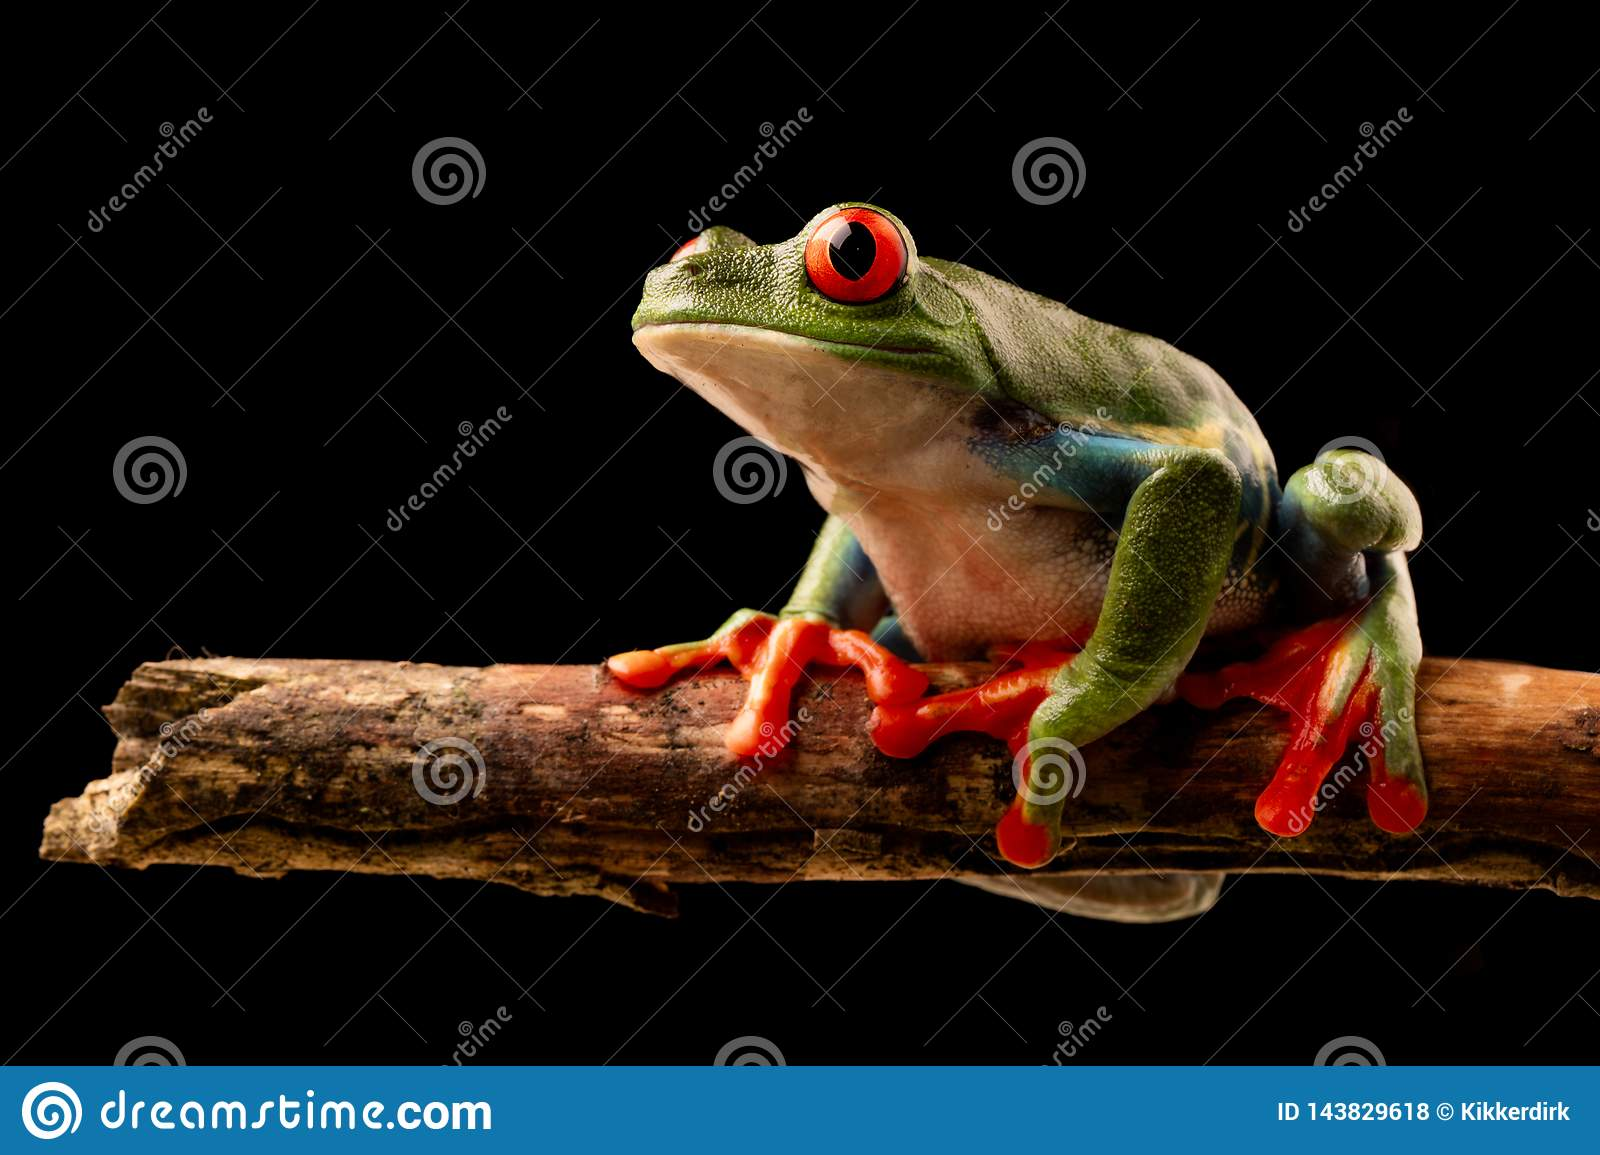 Red eyed tree frog at night on a twig in the rain forest of Costa Rica